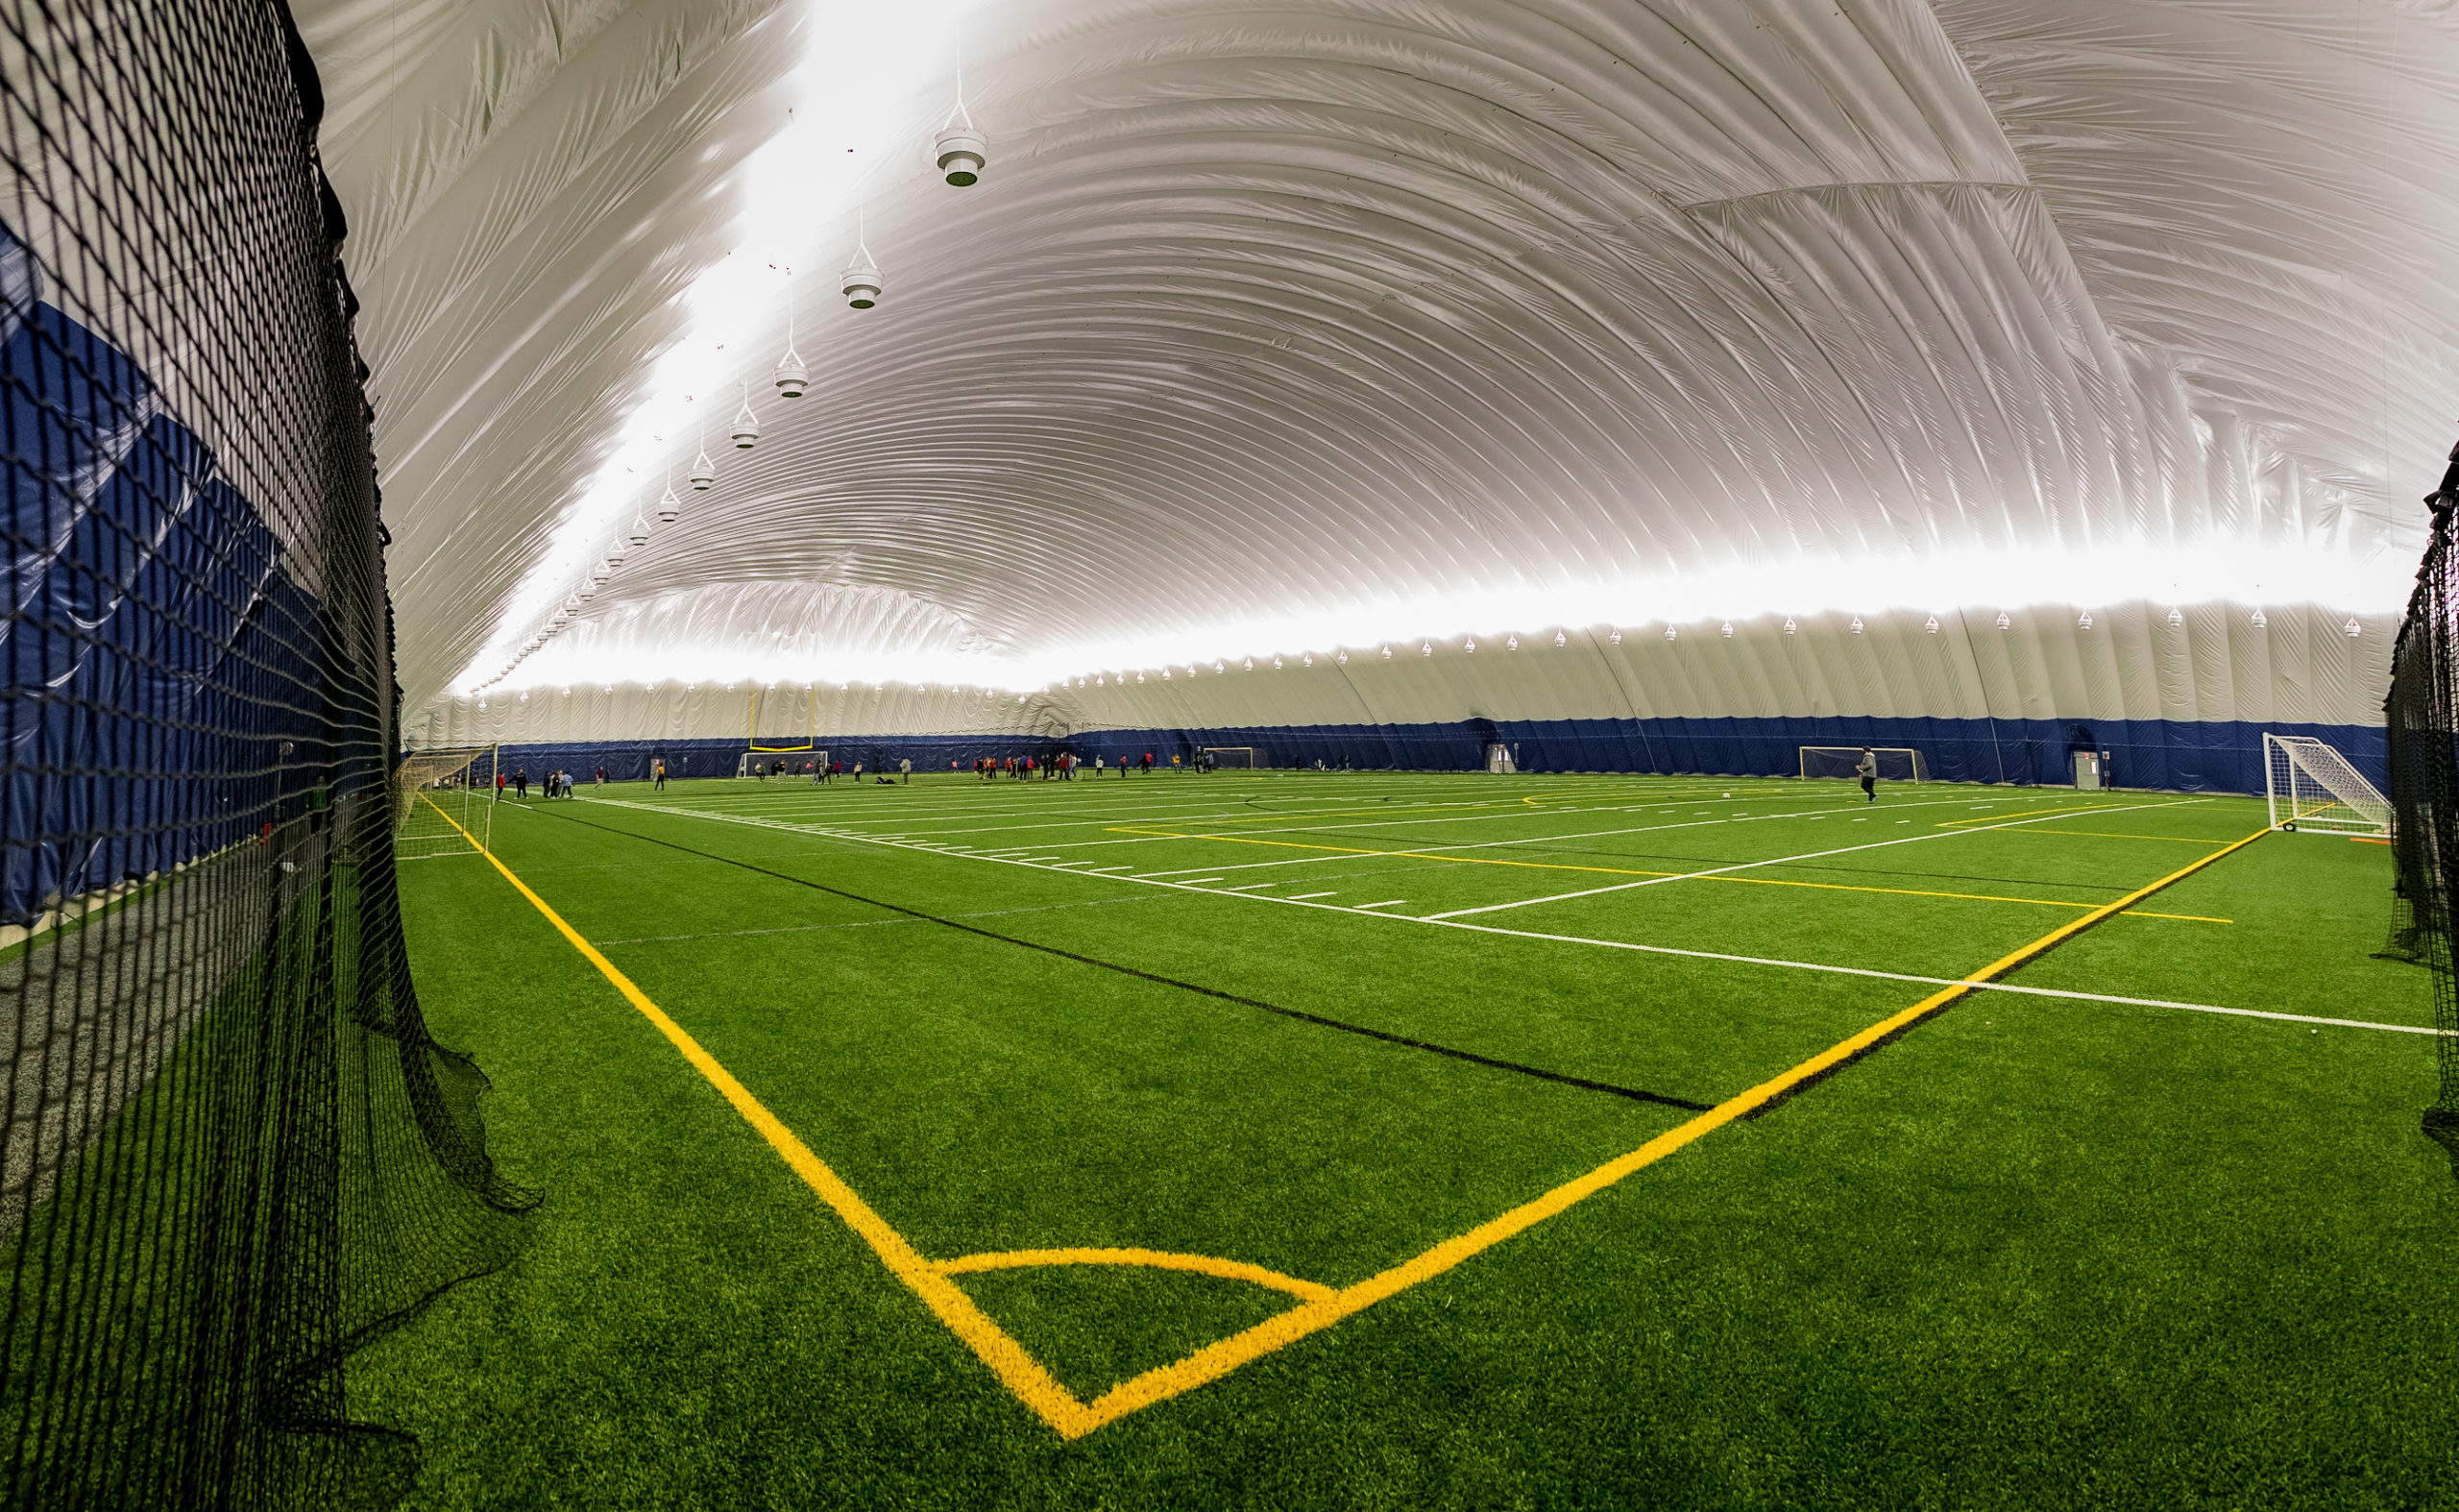 interior of domed athletic field